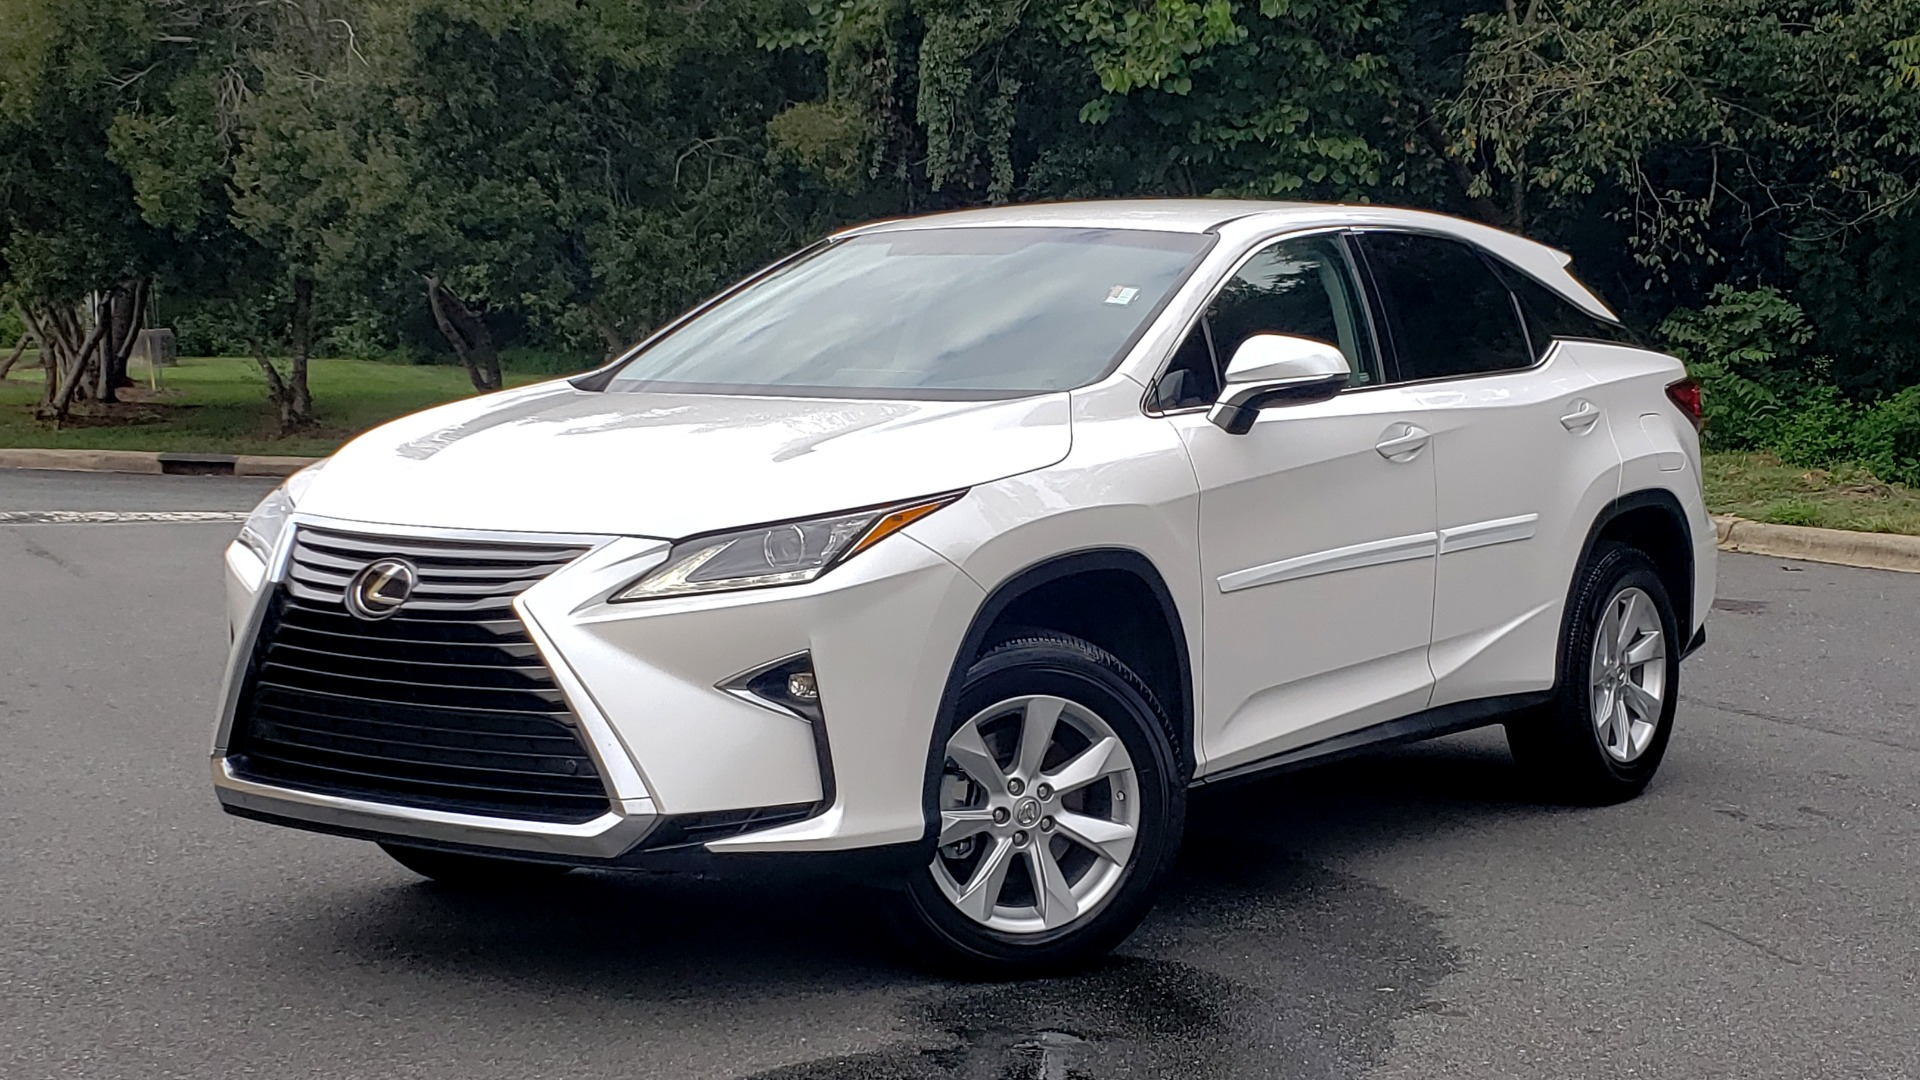 Used 2016 Lexus RX 350 FWD / 4-DR / 3.5L V6 / 8-SPD AUTO / LEATHER / REARVIEW for sale $31,995 at Formula Imports in Charlotte NC 28227 1